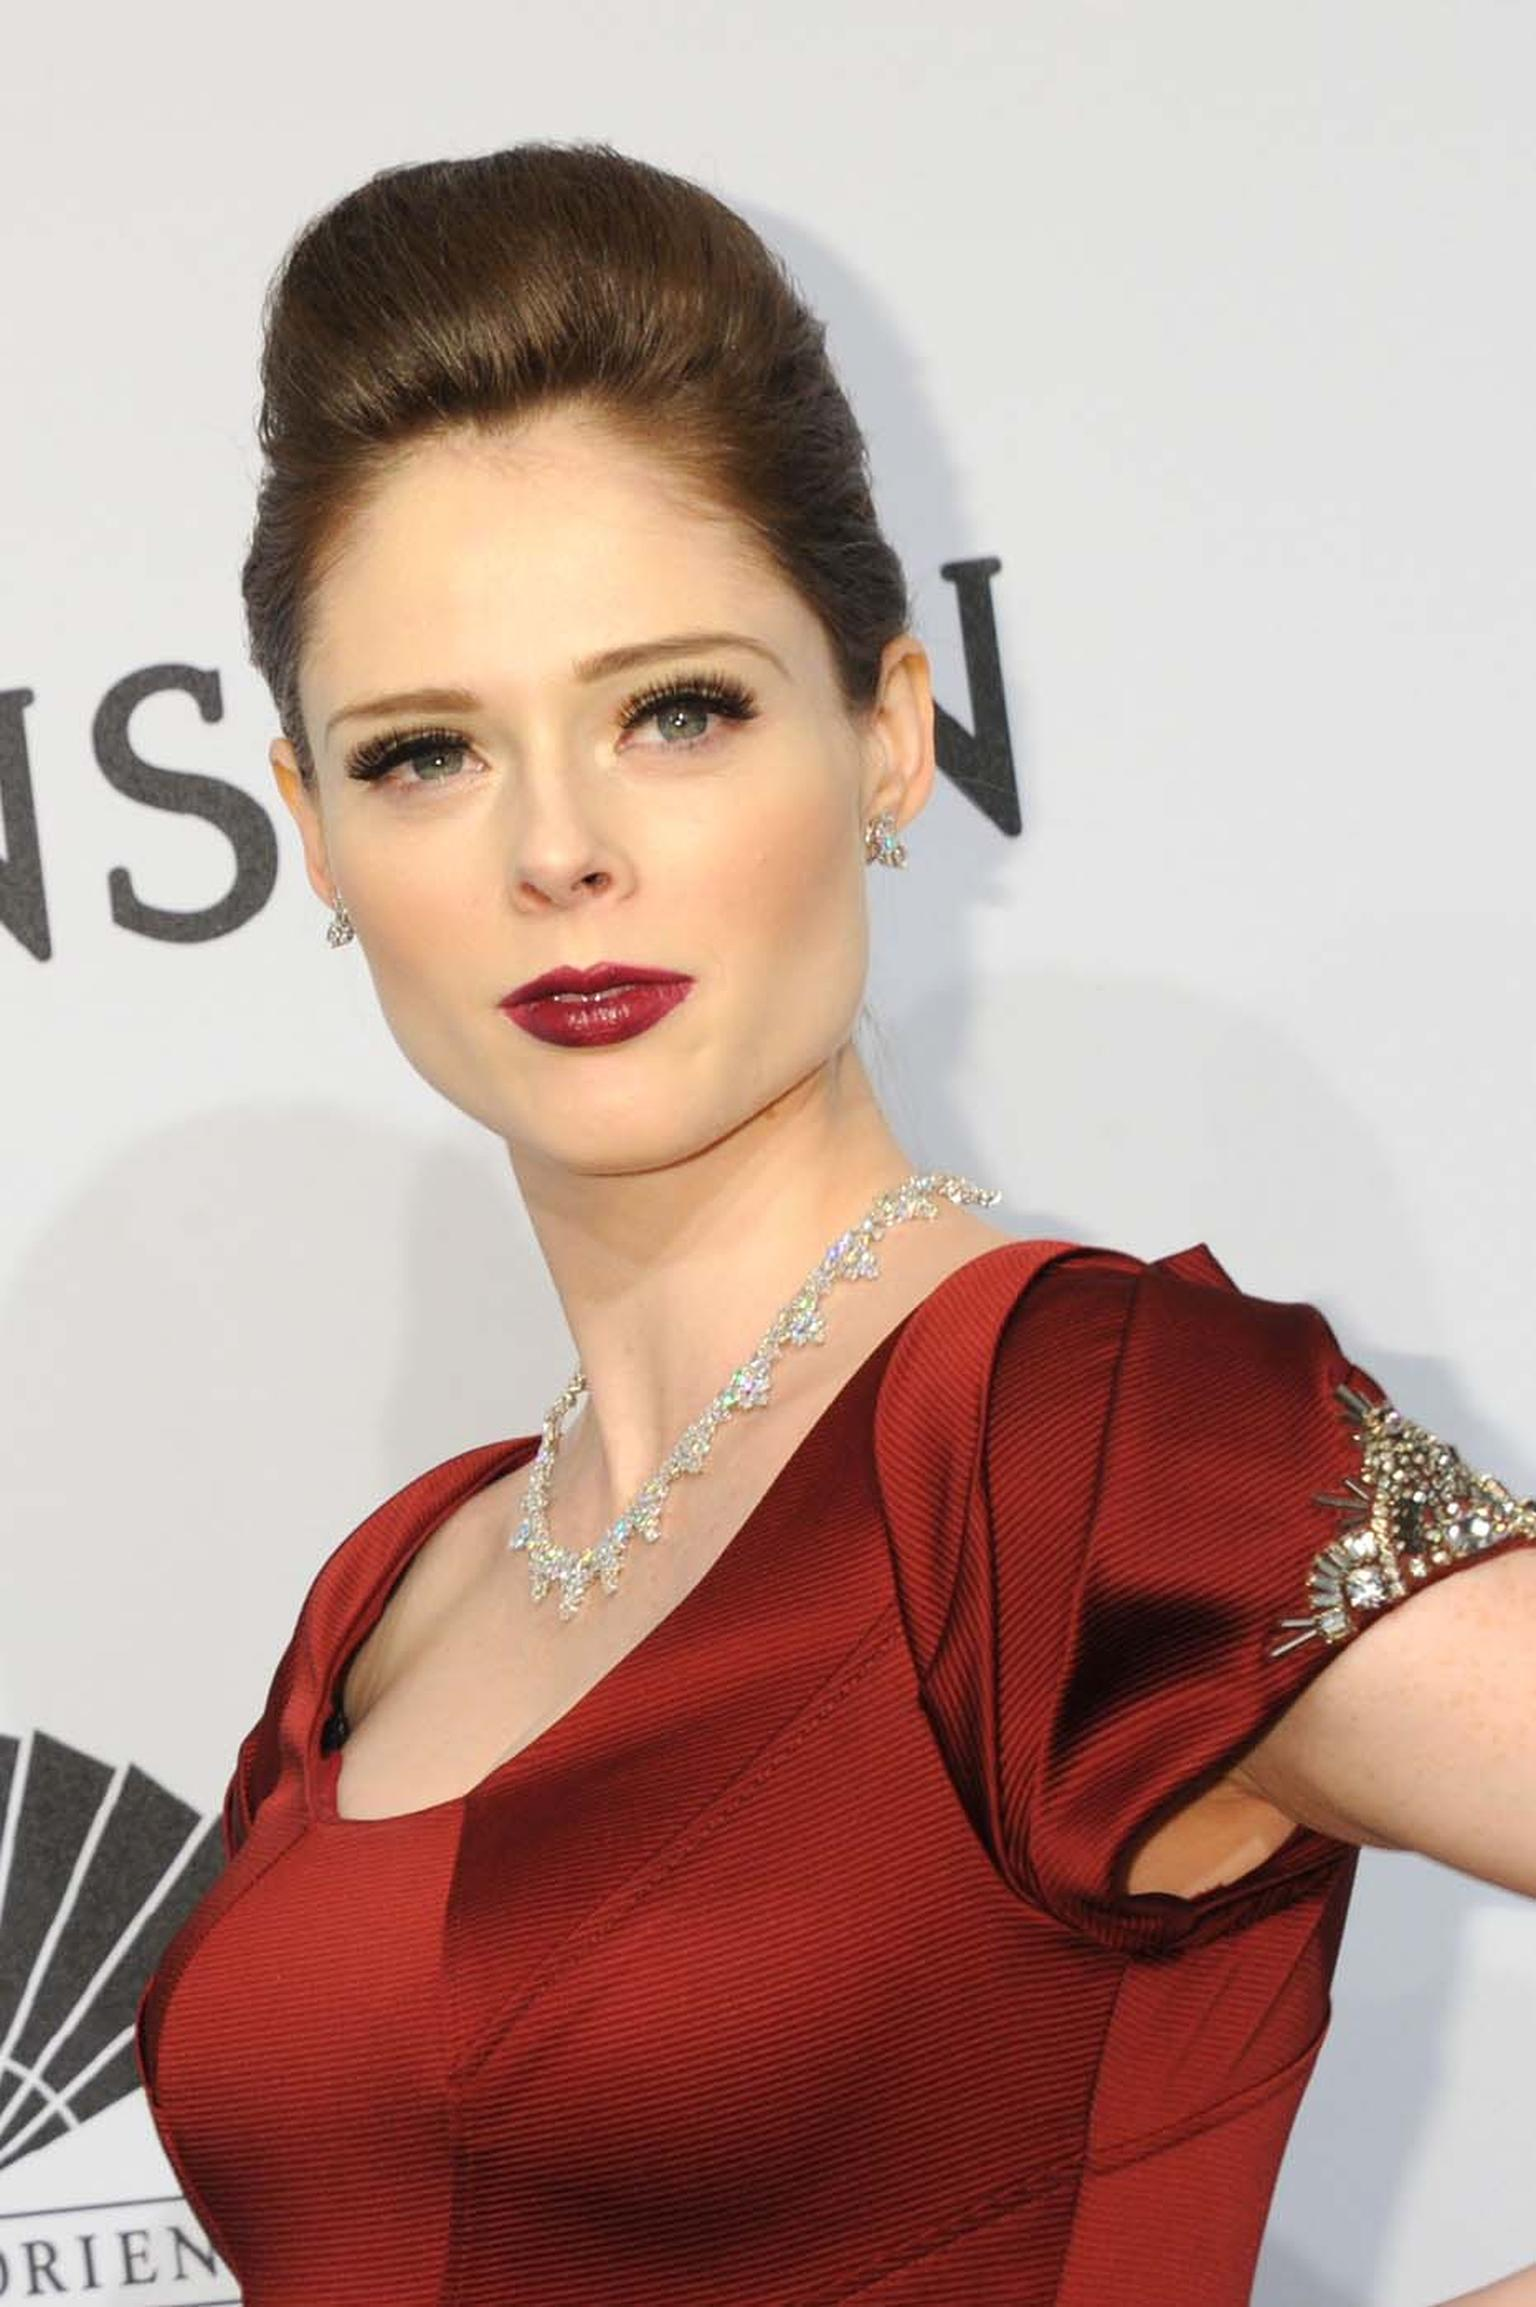 Model Coco Rocha wore a trio of Harry Winston high jewellery diamond pieces, set in platinum, when she attended the 2015 amfAR New York Gala. She wore a 62 carat Winston Cluster diamond necklace, a pair of Three Stone Winston Cluster diamond earrings (6.1